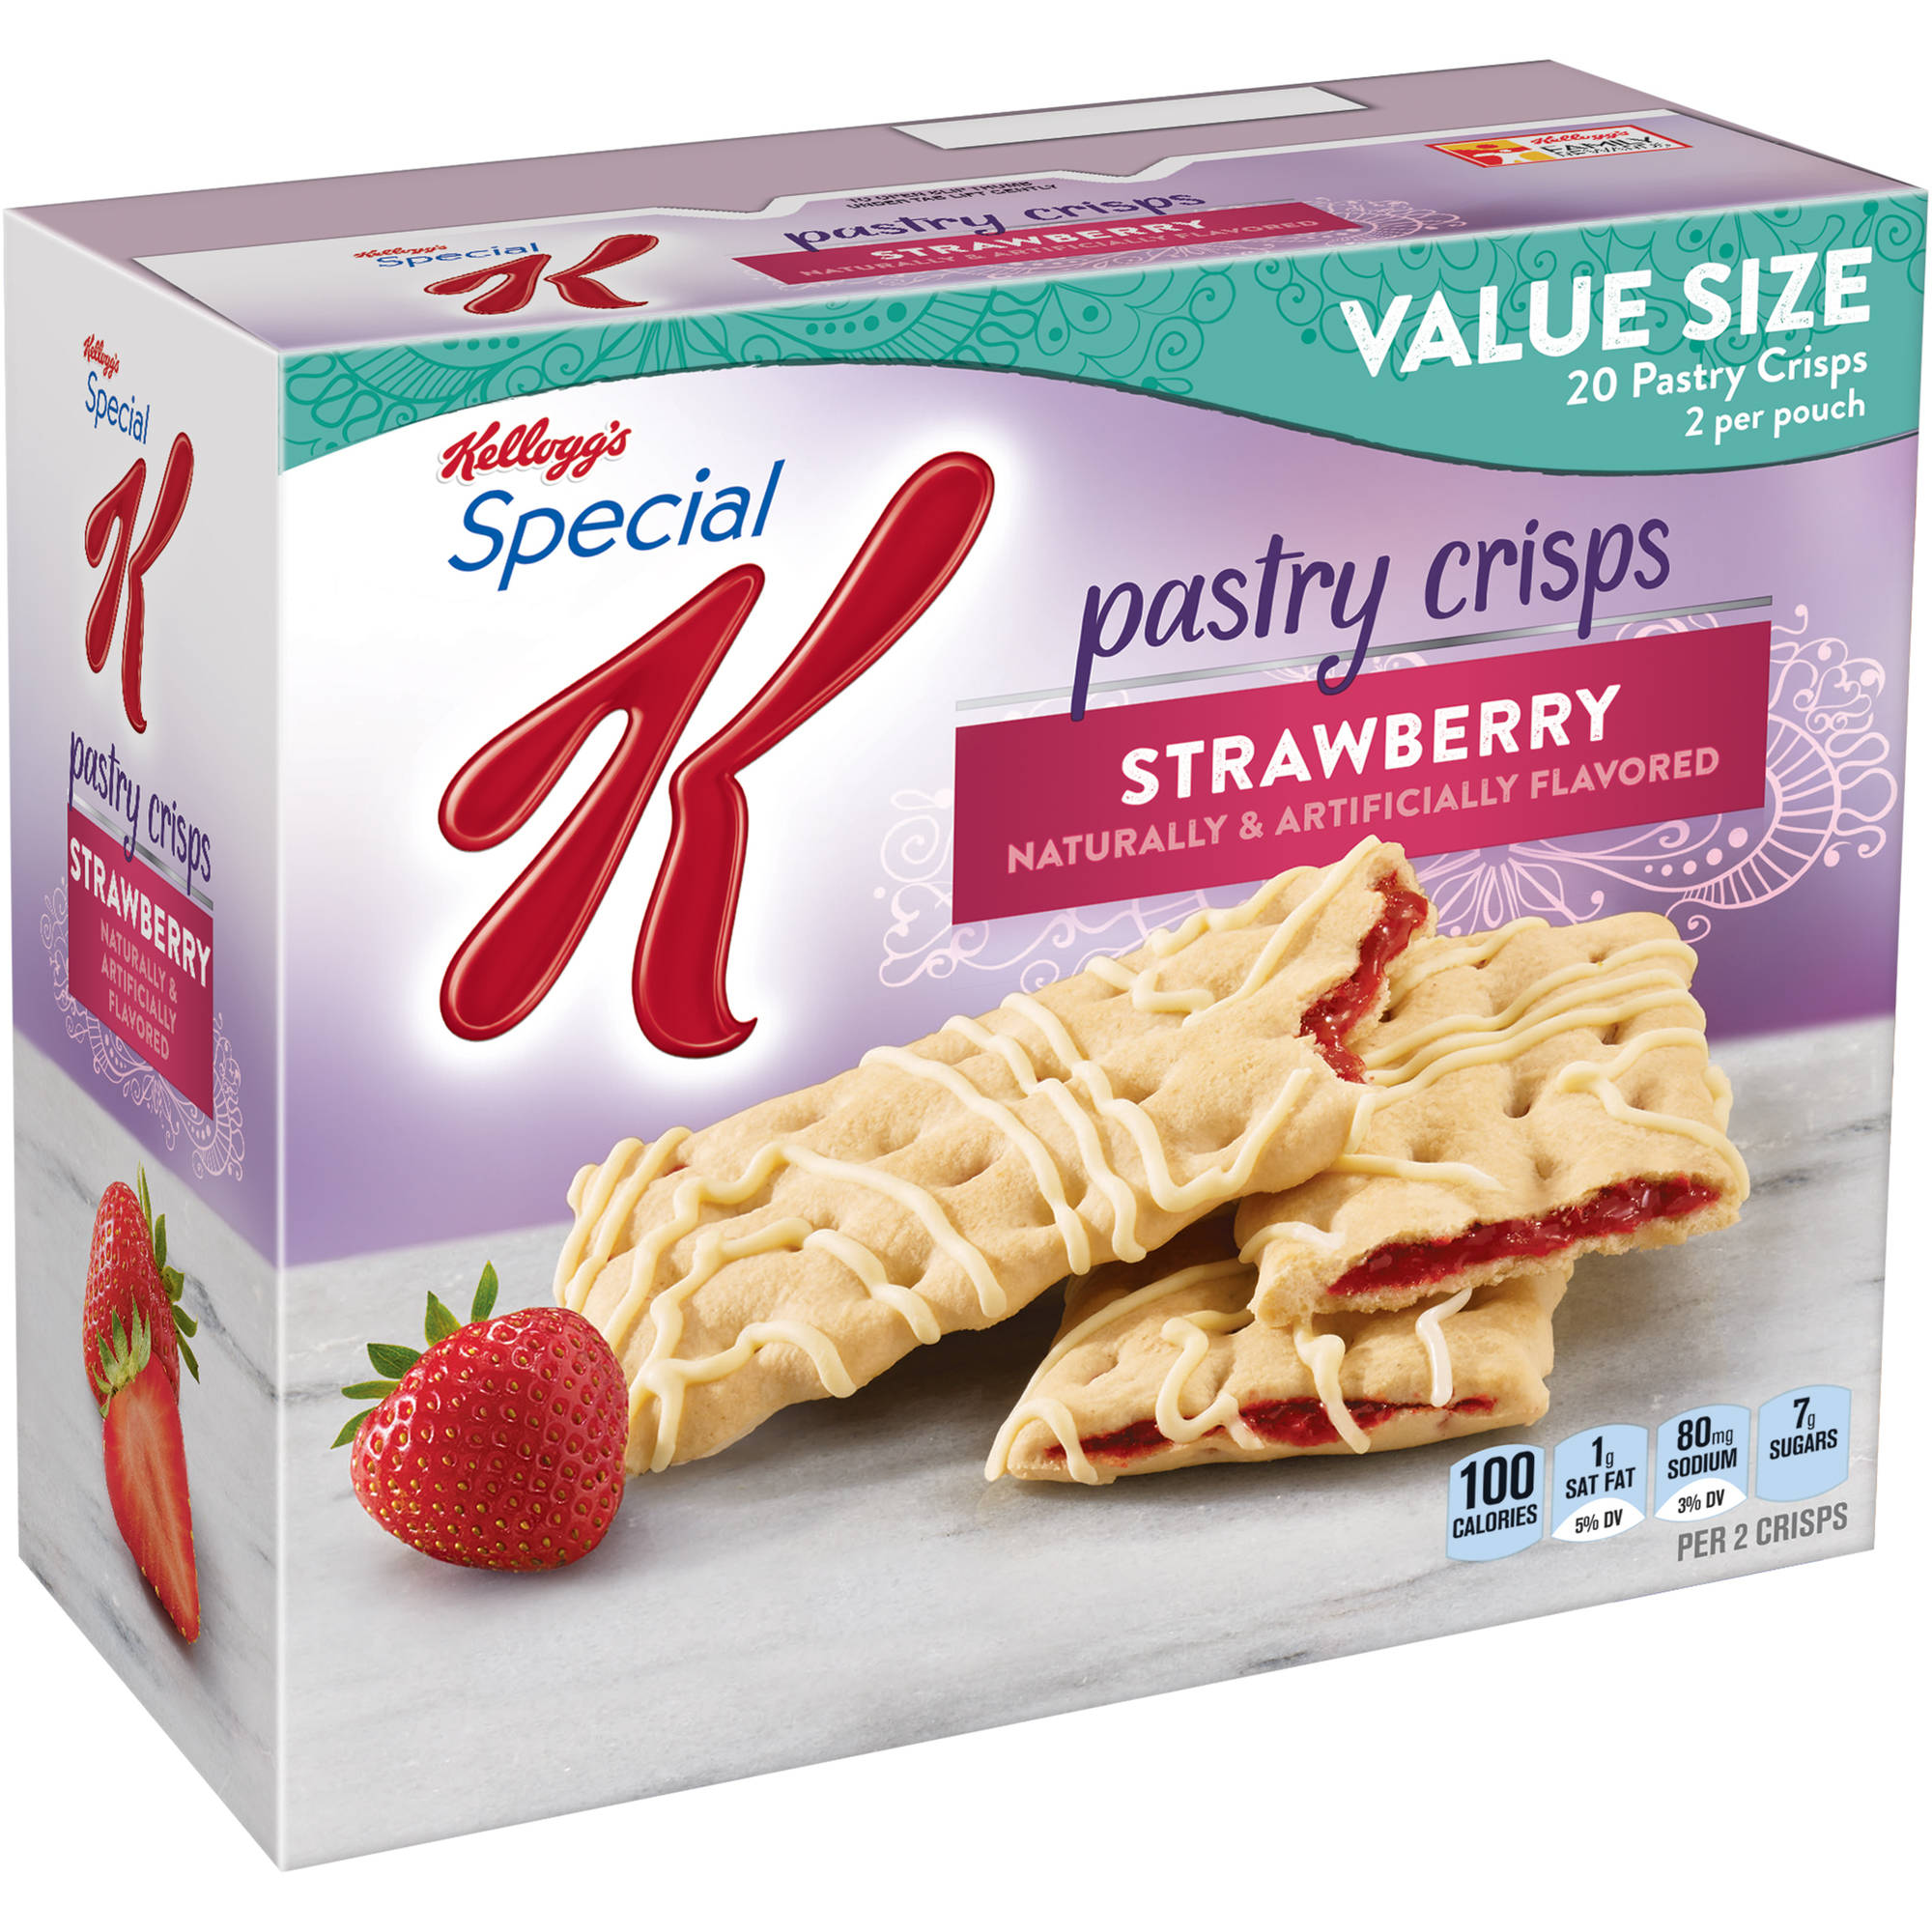 Kellogg's Special K Strawberry Pastry Crisps, 0.88 oz, 10 count